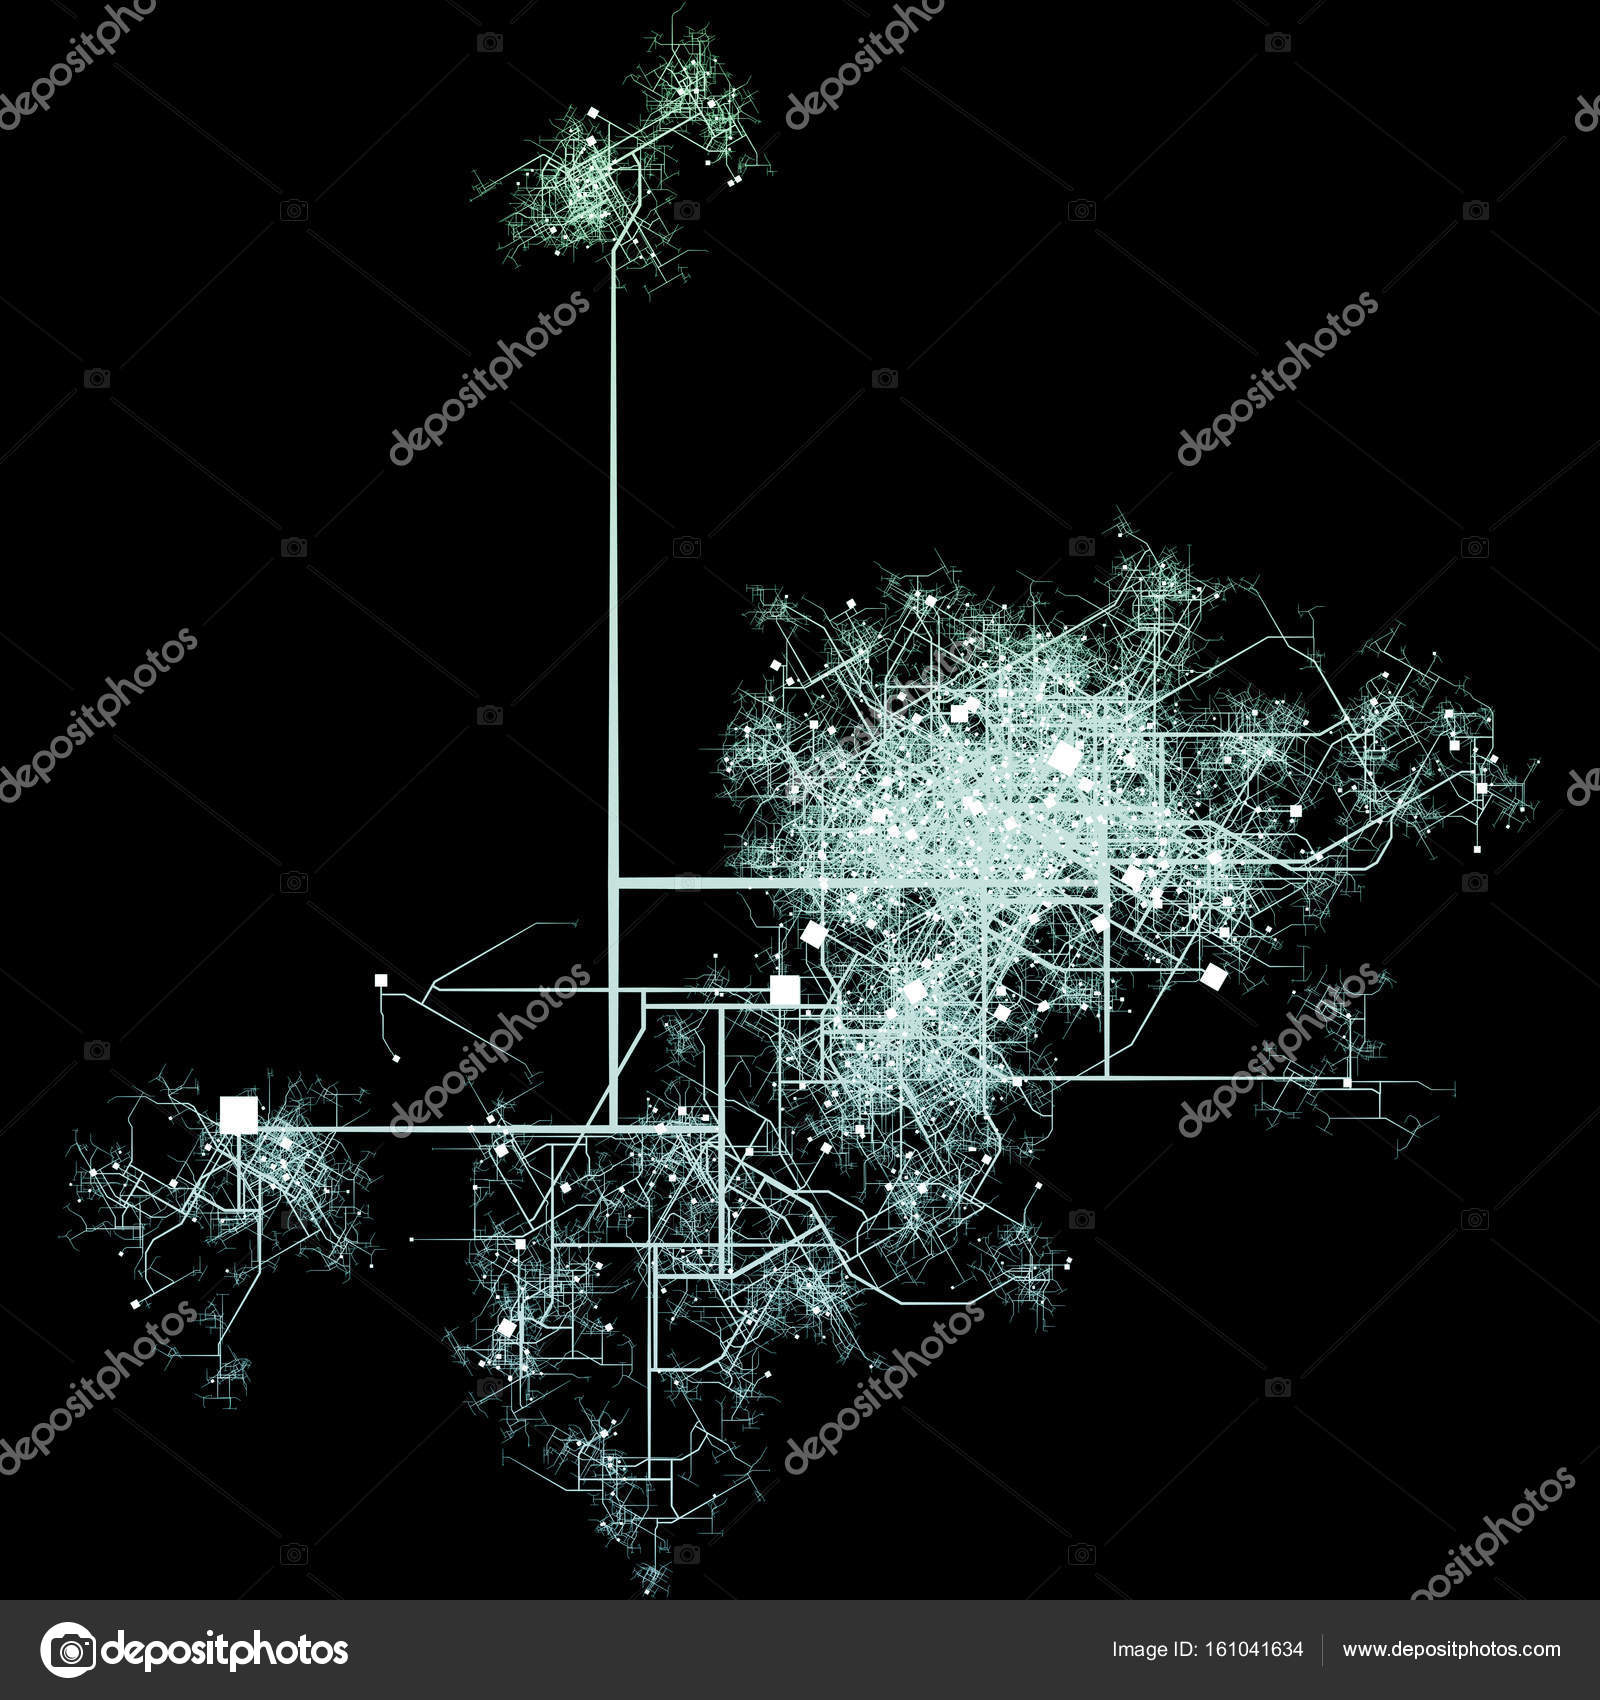 City blueprints concept art stock photo kentoh 161041634 city blueprints concept art stock photo malvernweather